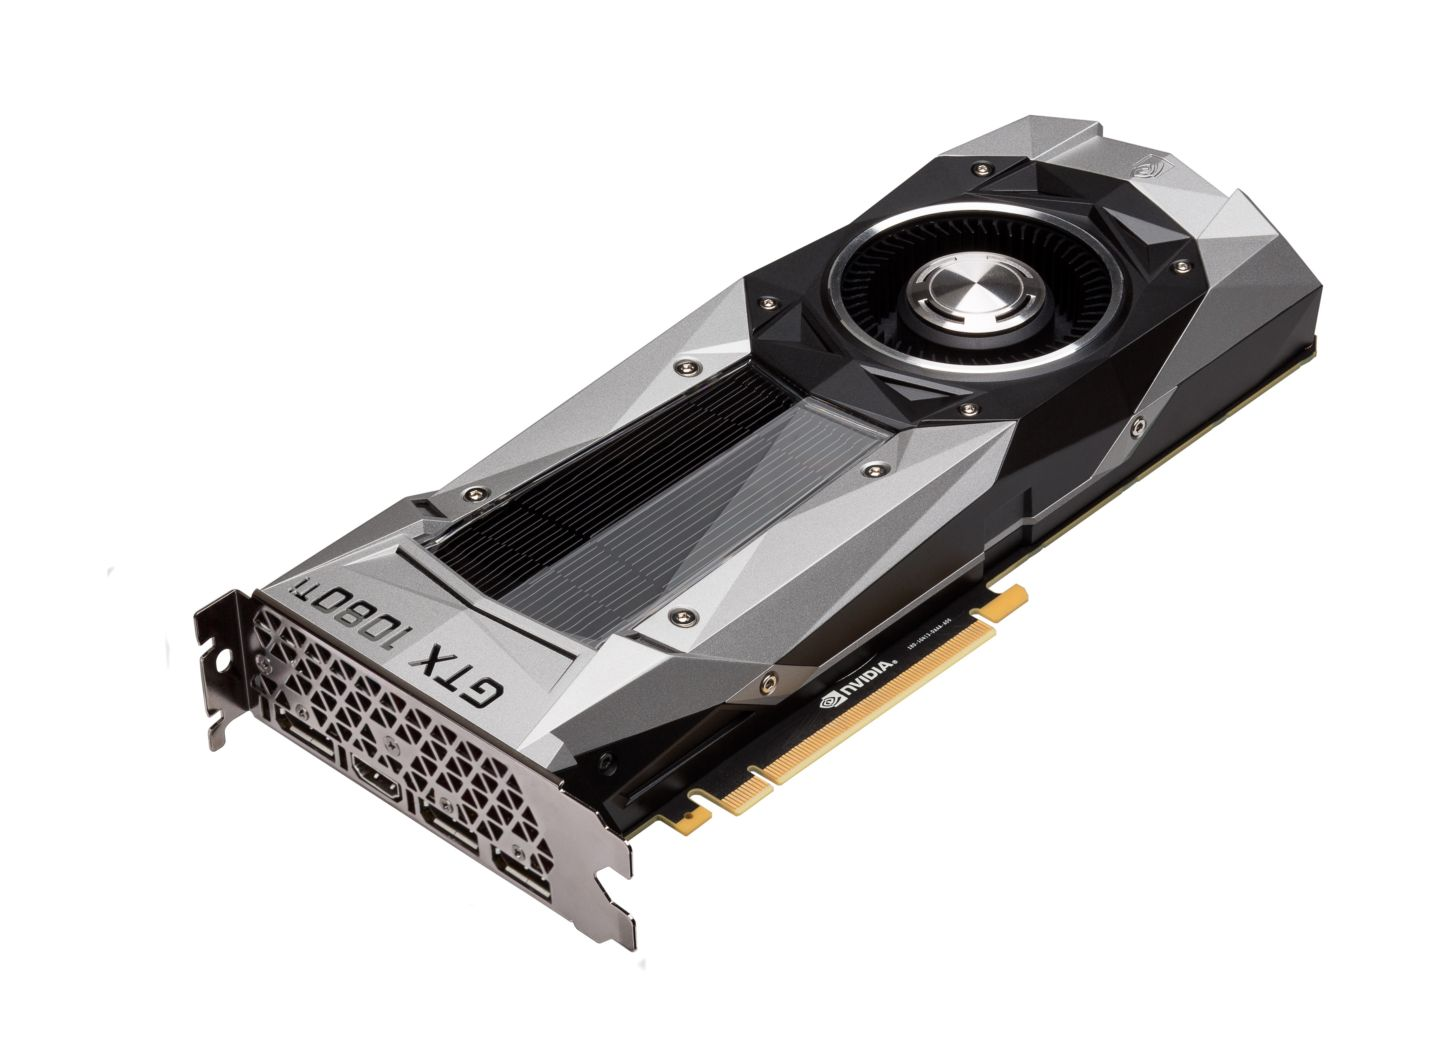 Nvidia GTX 1080 Ti Release Date and Price